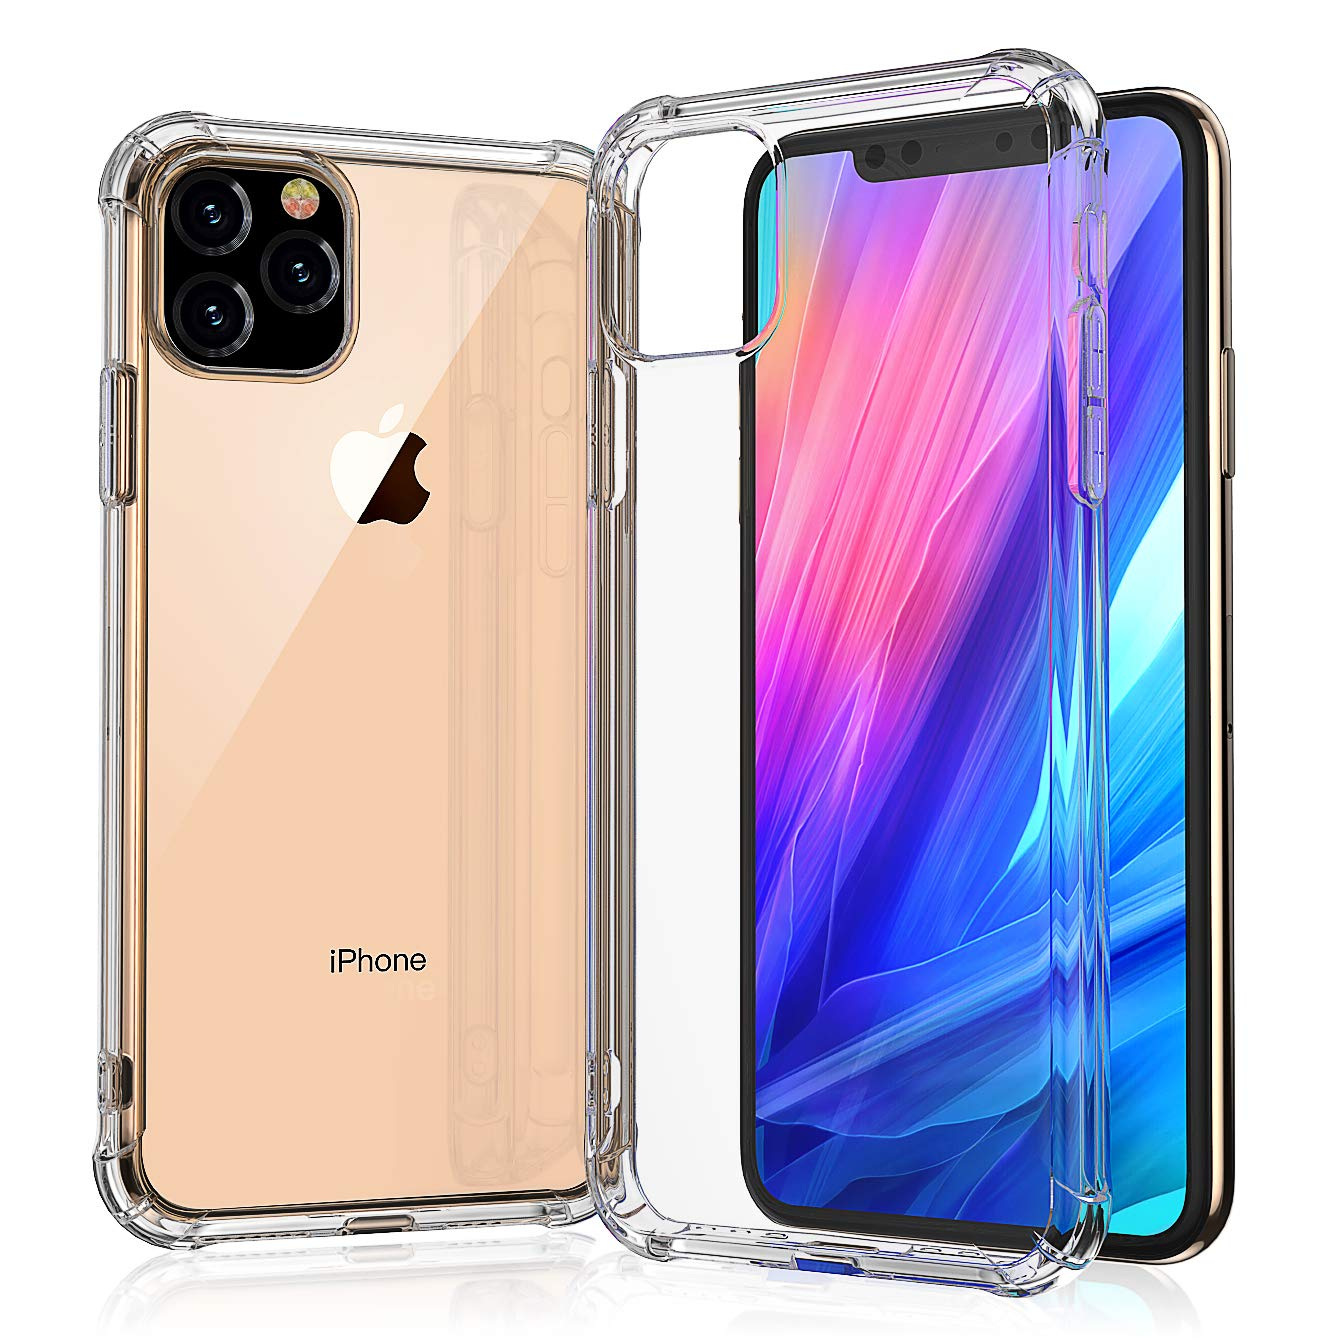 Chirano iPhone 11 Pro Max Case, Clear, Only for 6.5 inch iPhone 11 Pro Max 2019, 4 Corners Shockproof Protection